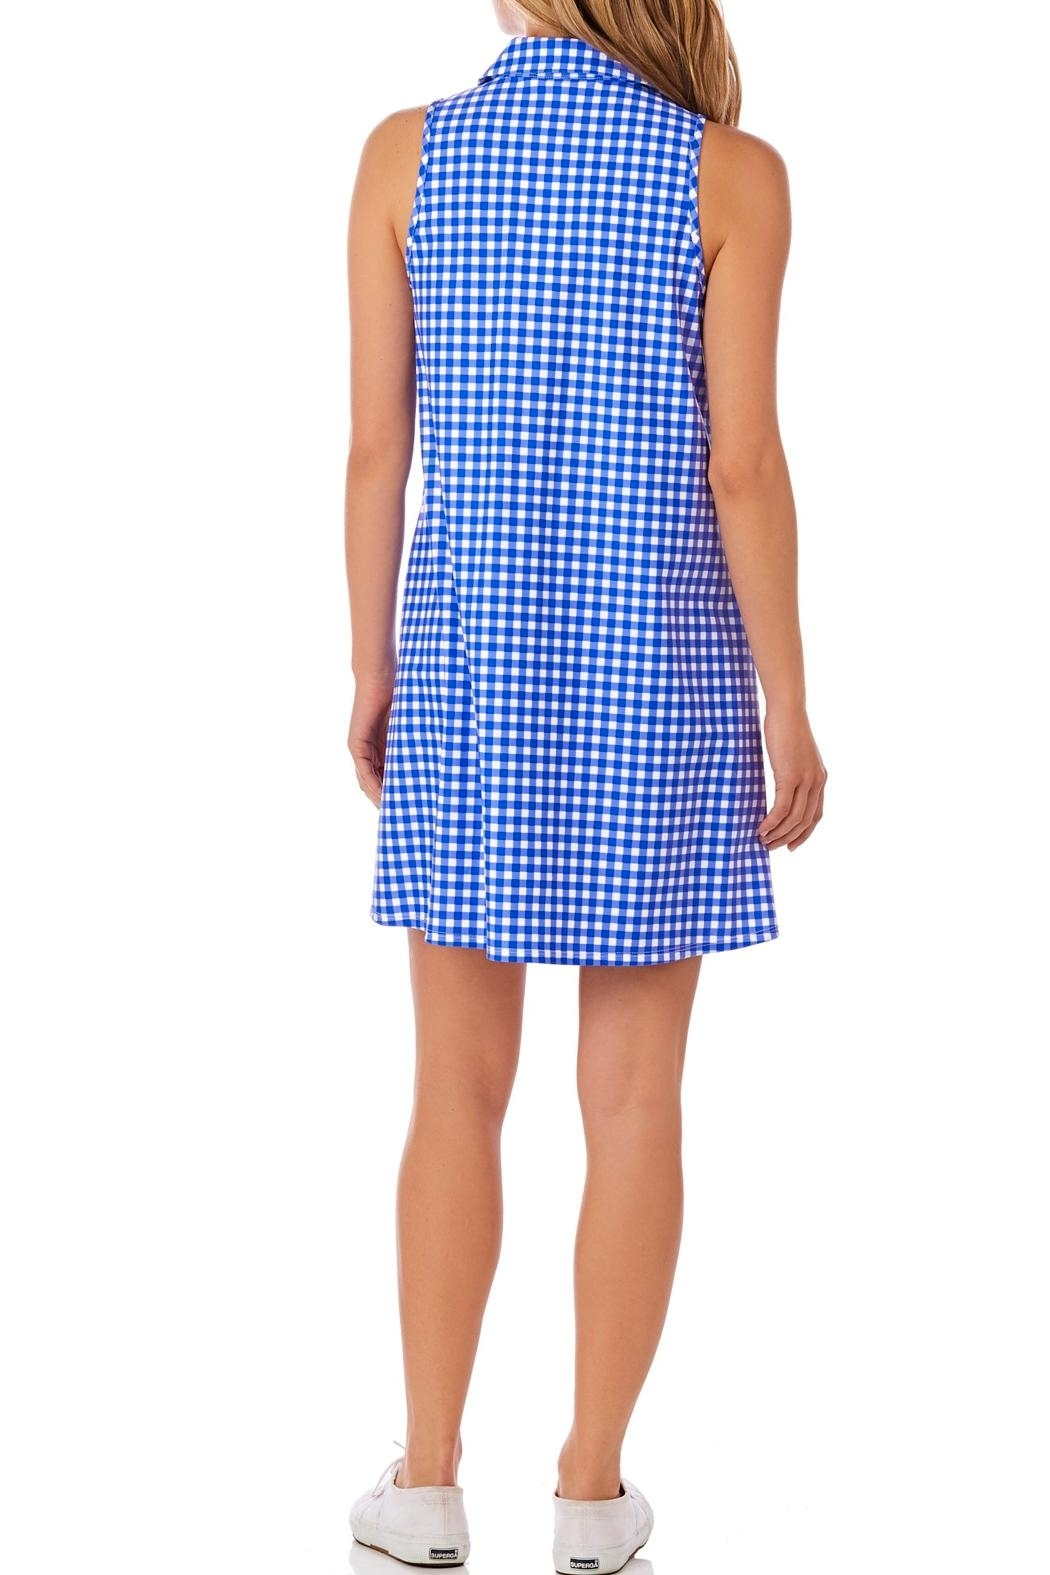 Jude Connally Harlee Swing Dress - Front Full Image